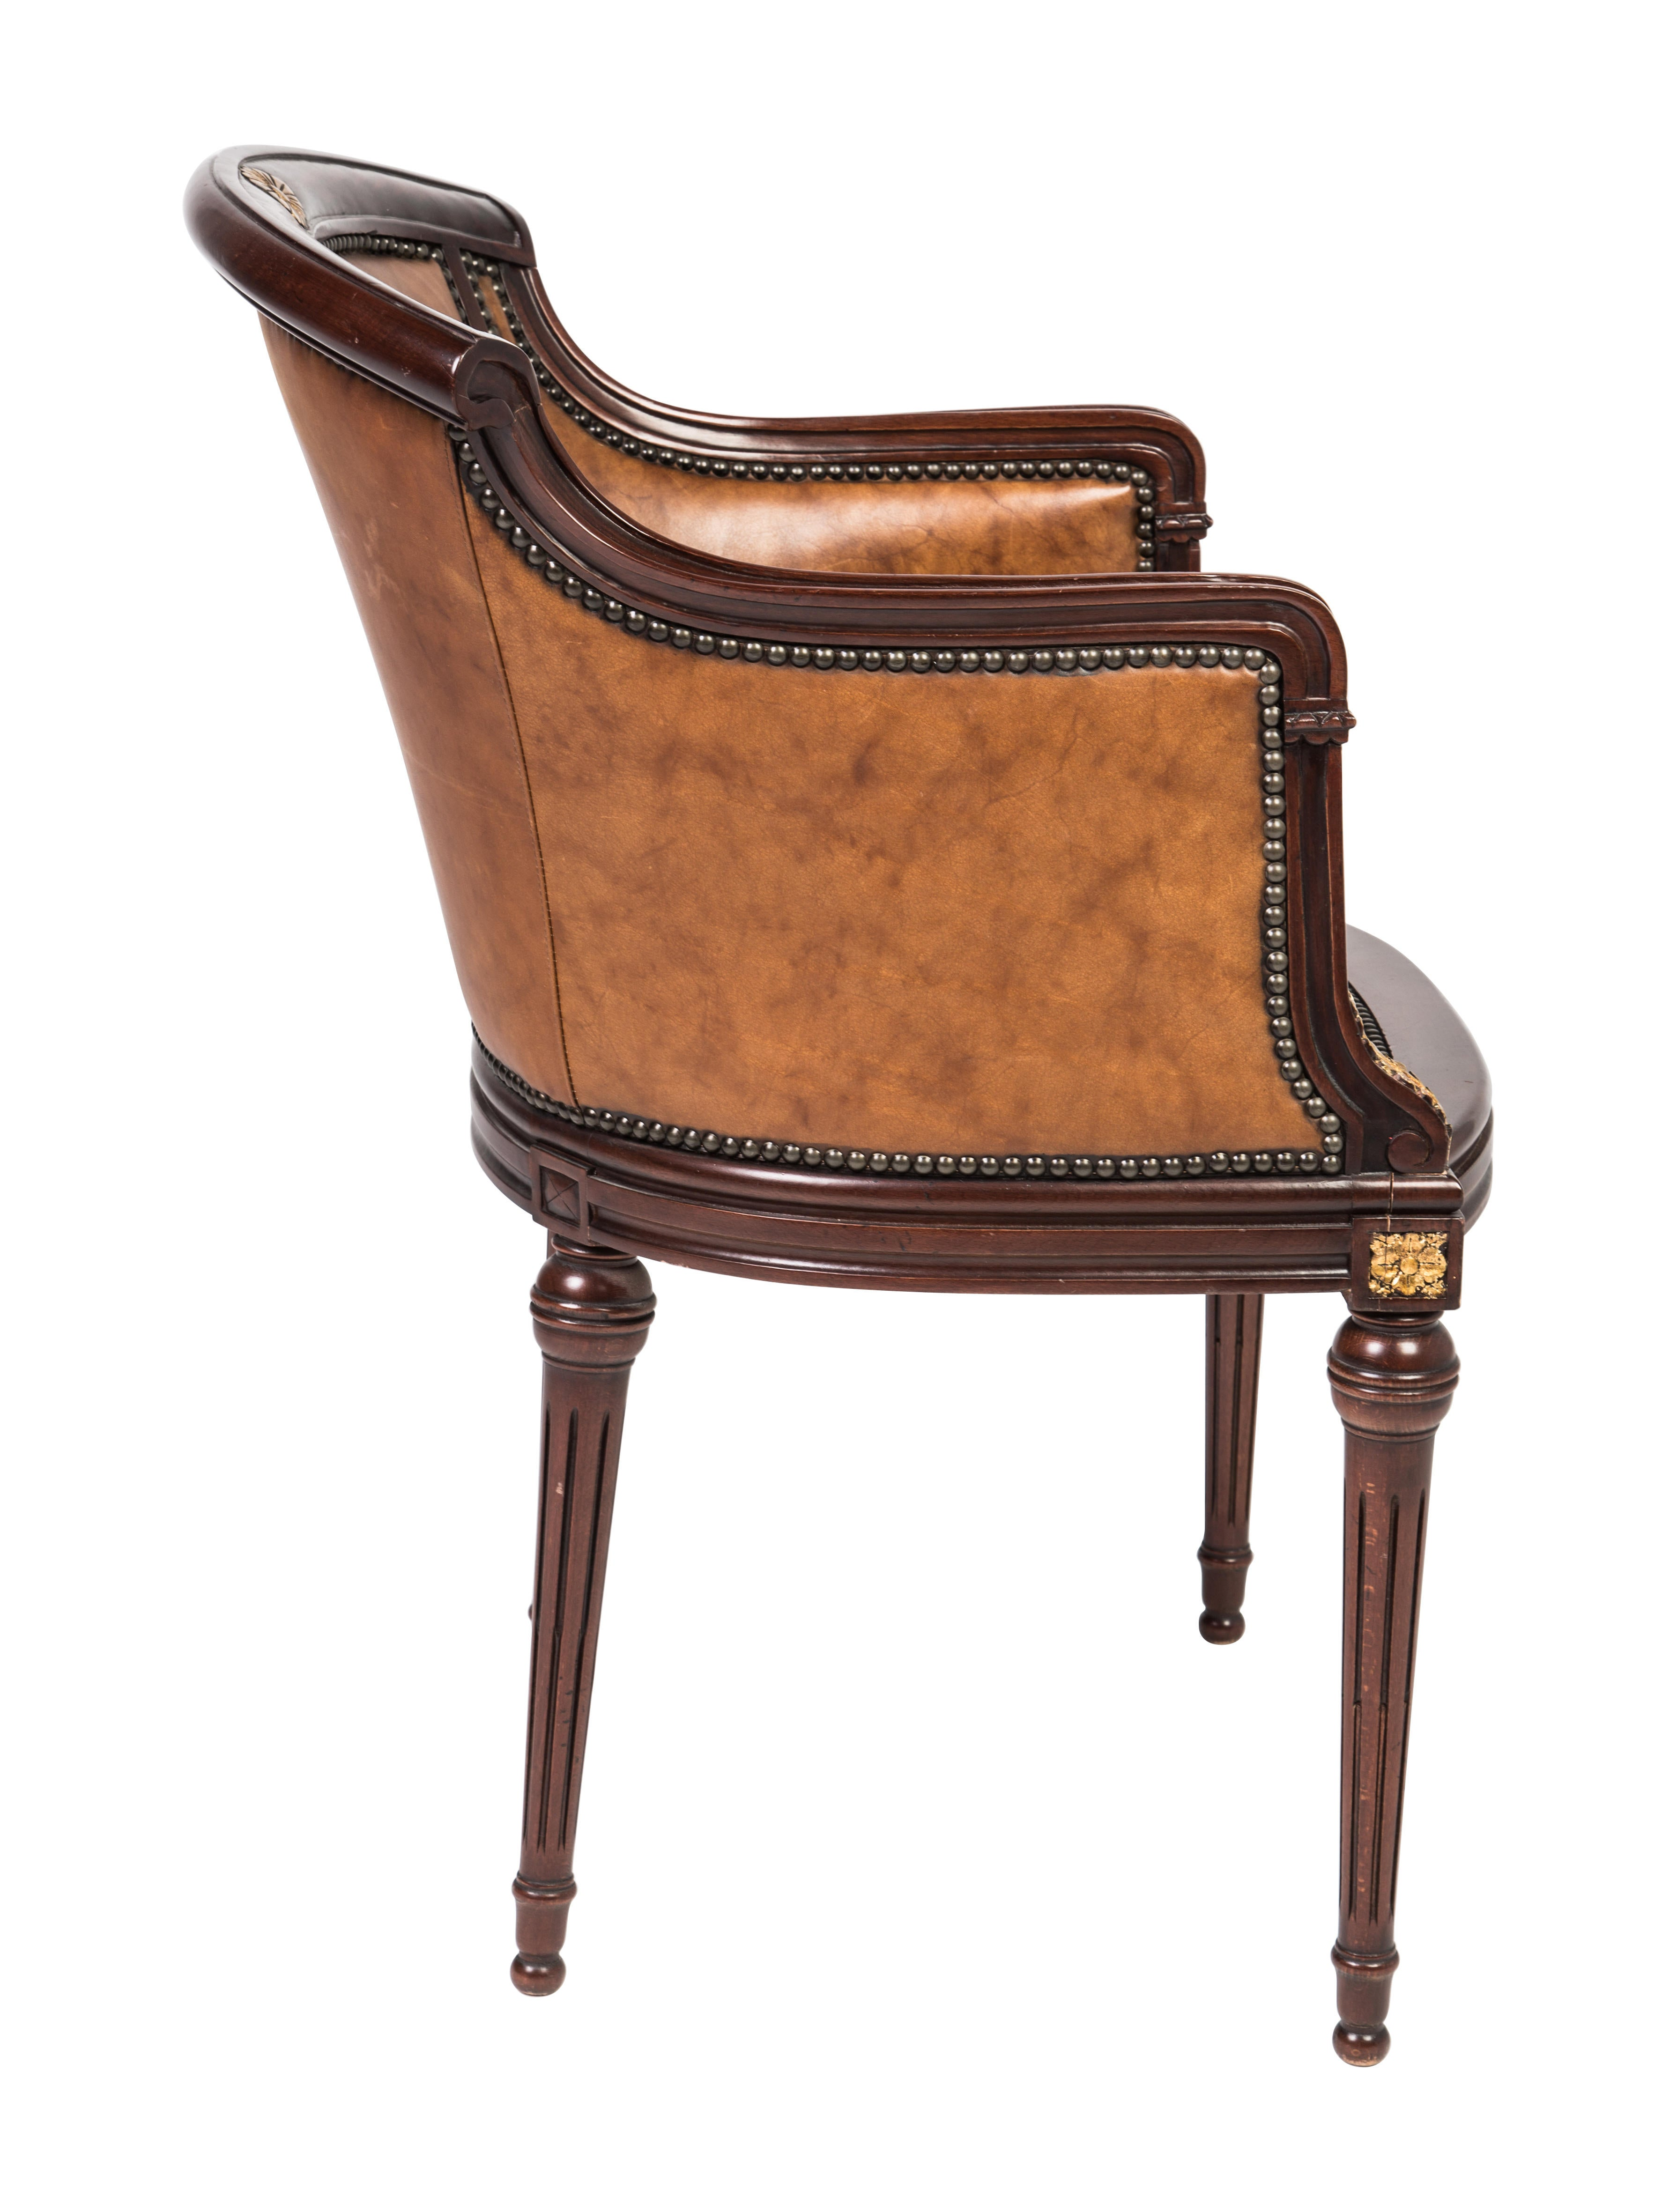 Maitland Smith Leather Armchair Furniture Maits20026 The Realreal